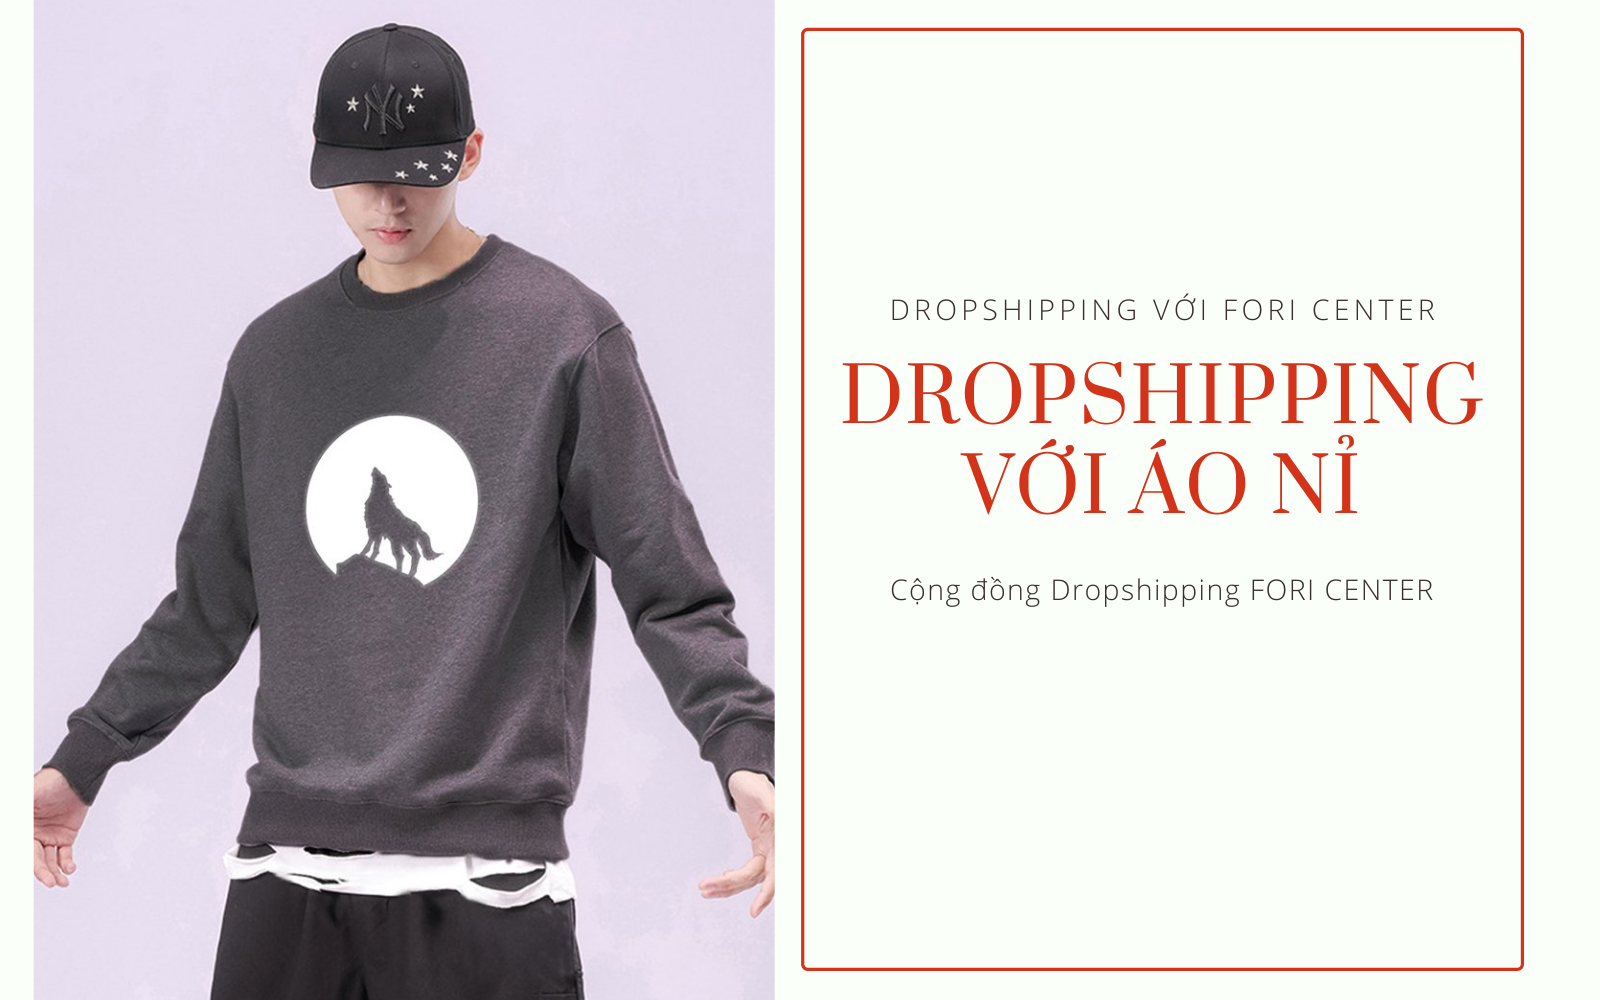 dropshipping-voi-ao-ni